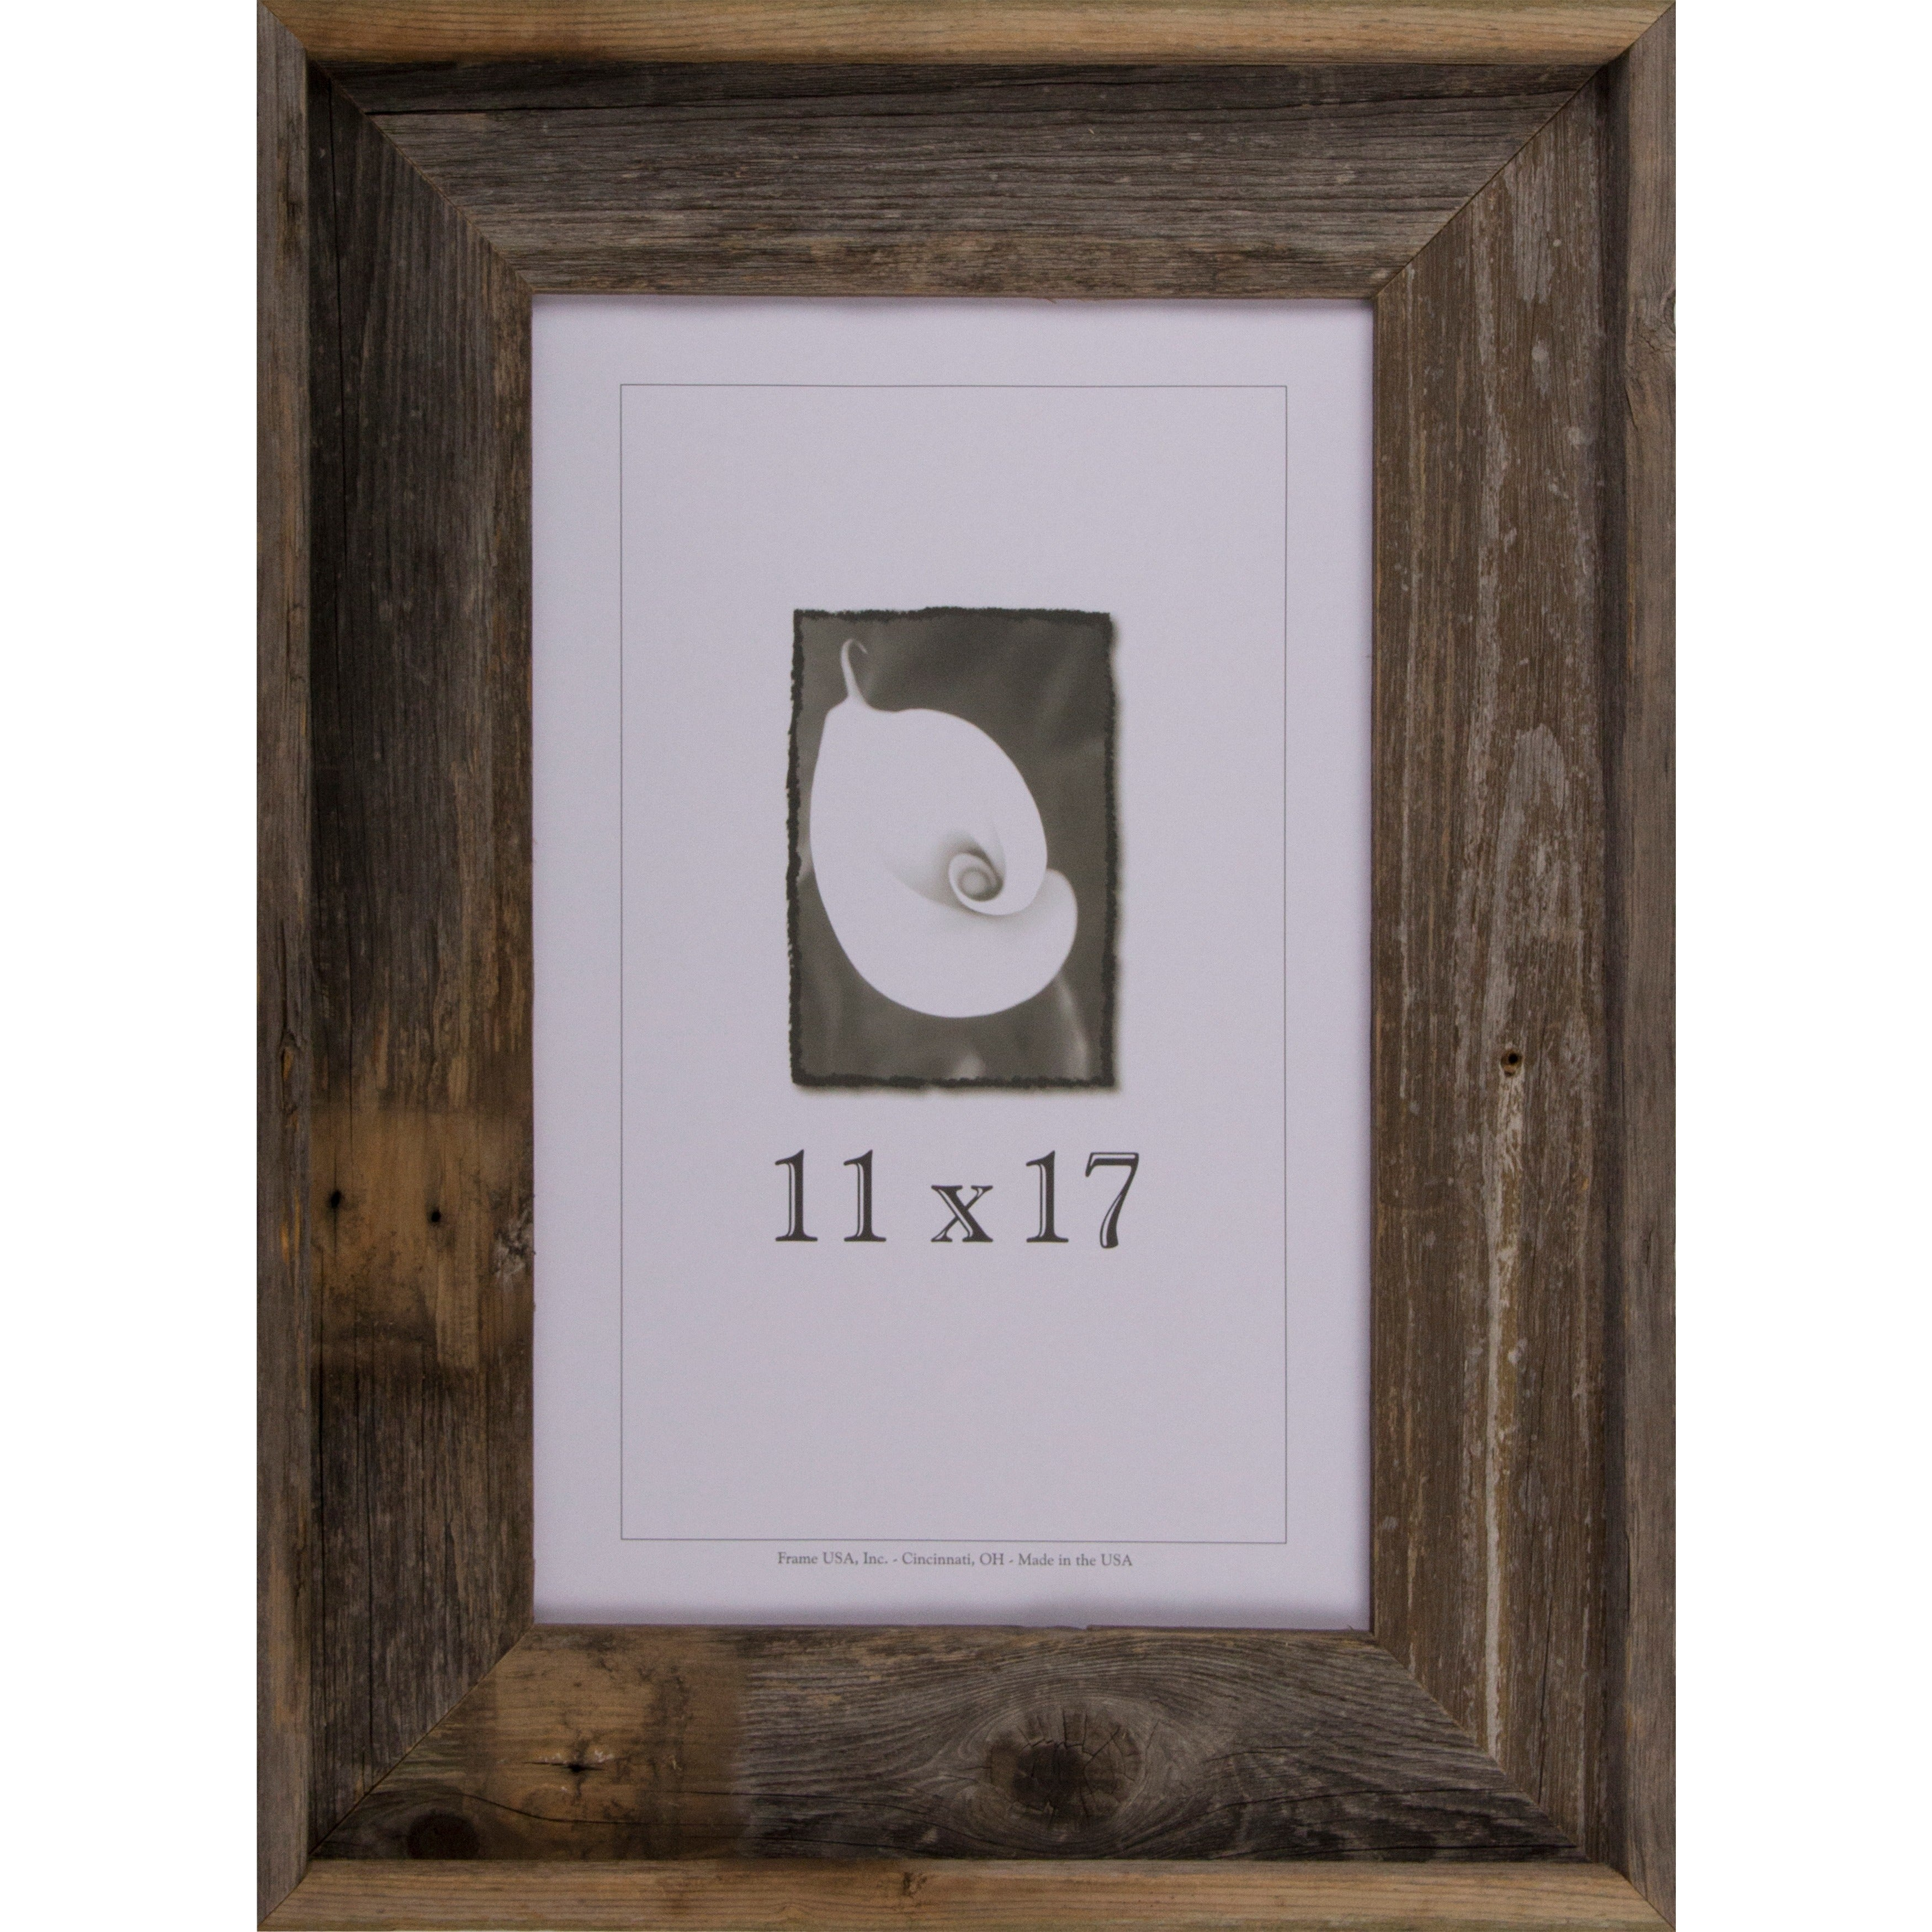 11x17 picture frame - Combined Kitchen and Living Room ...